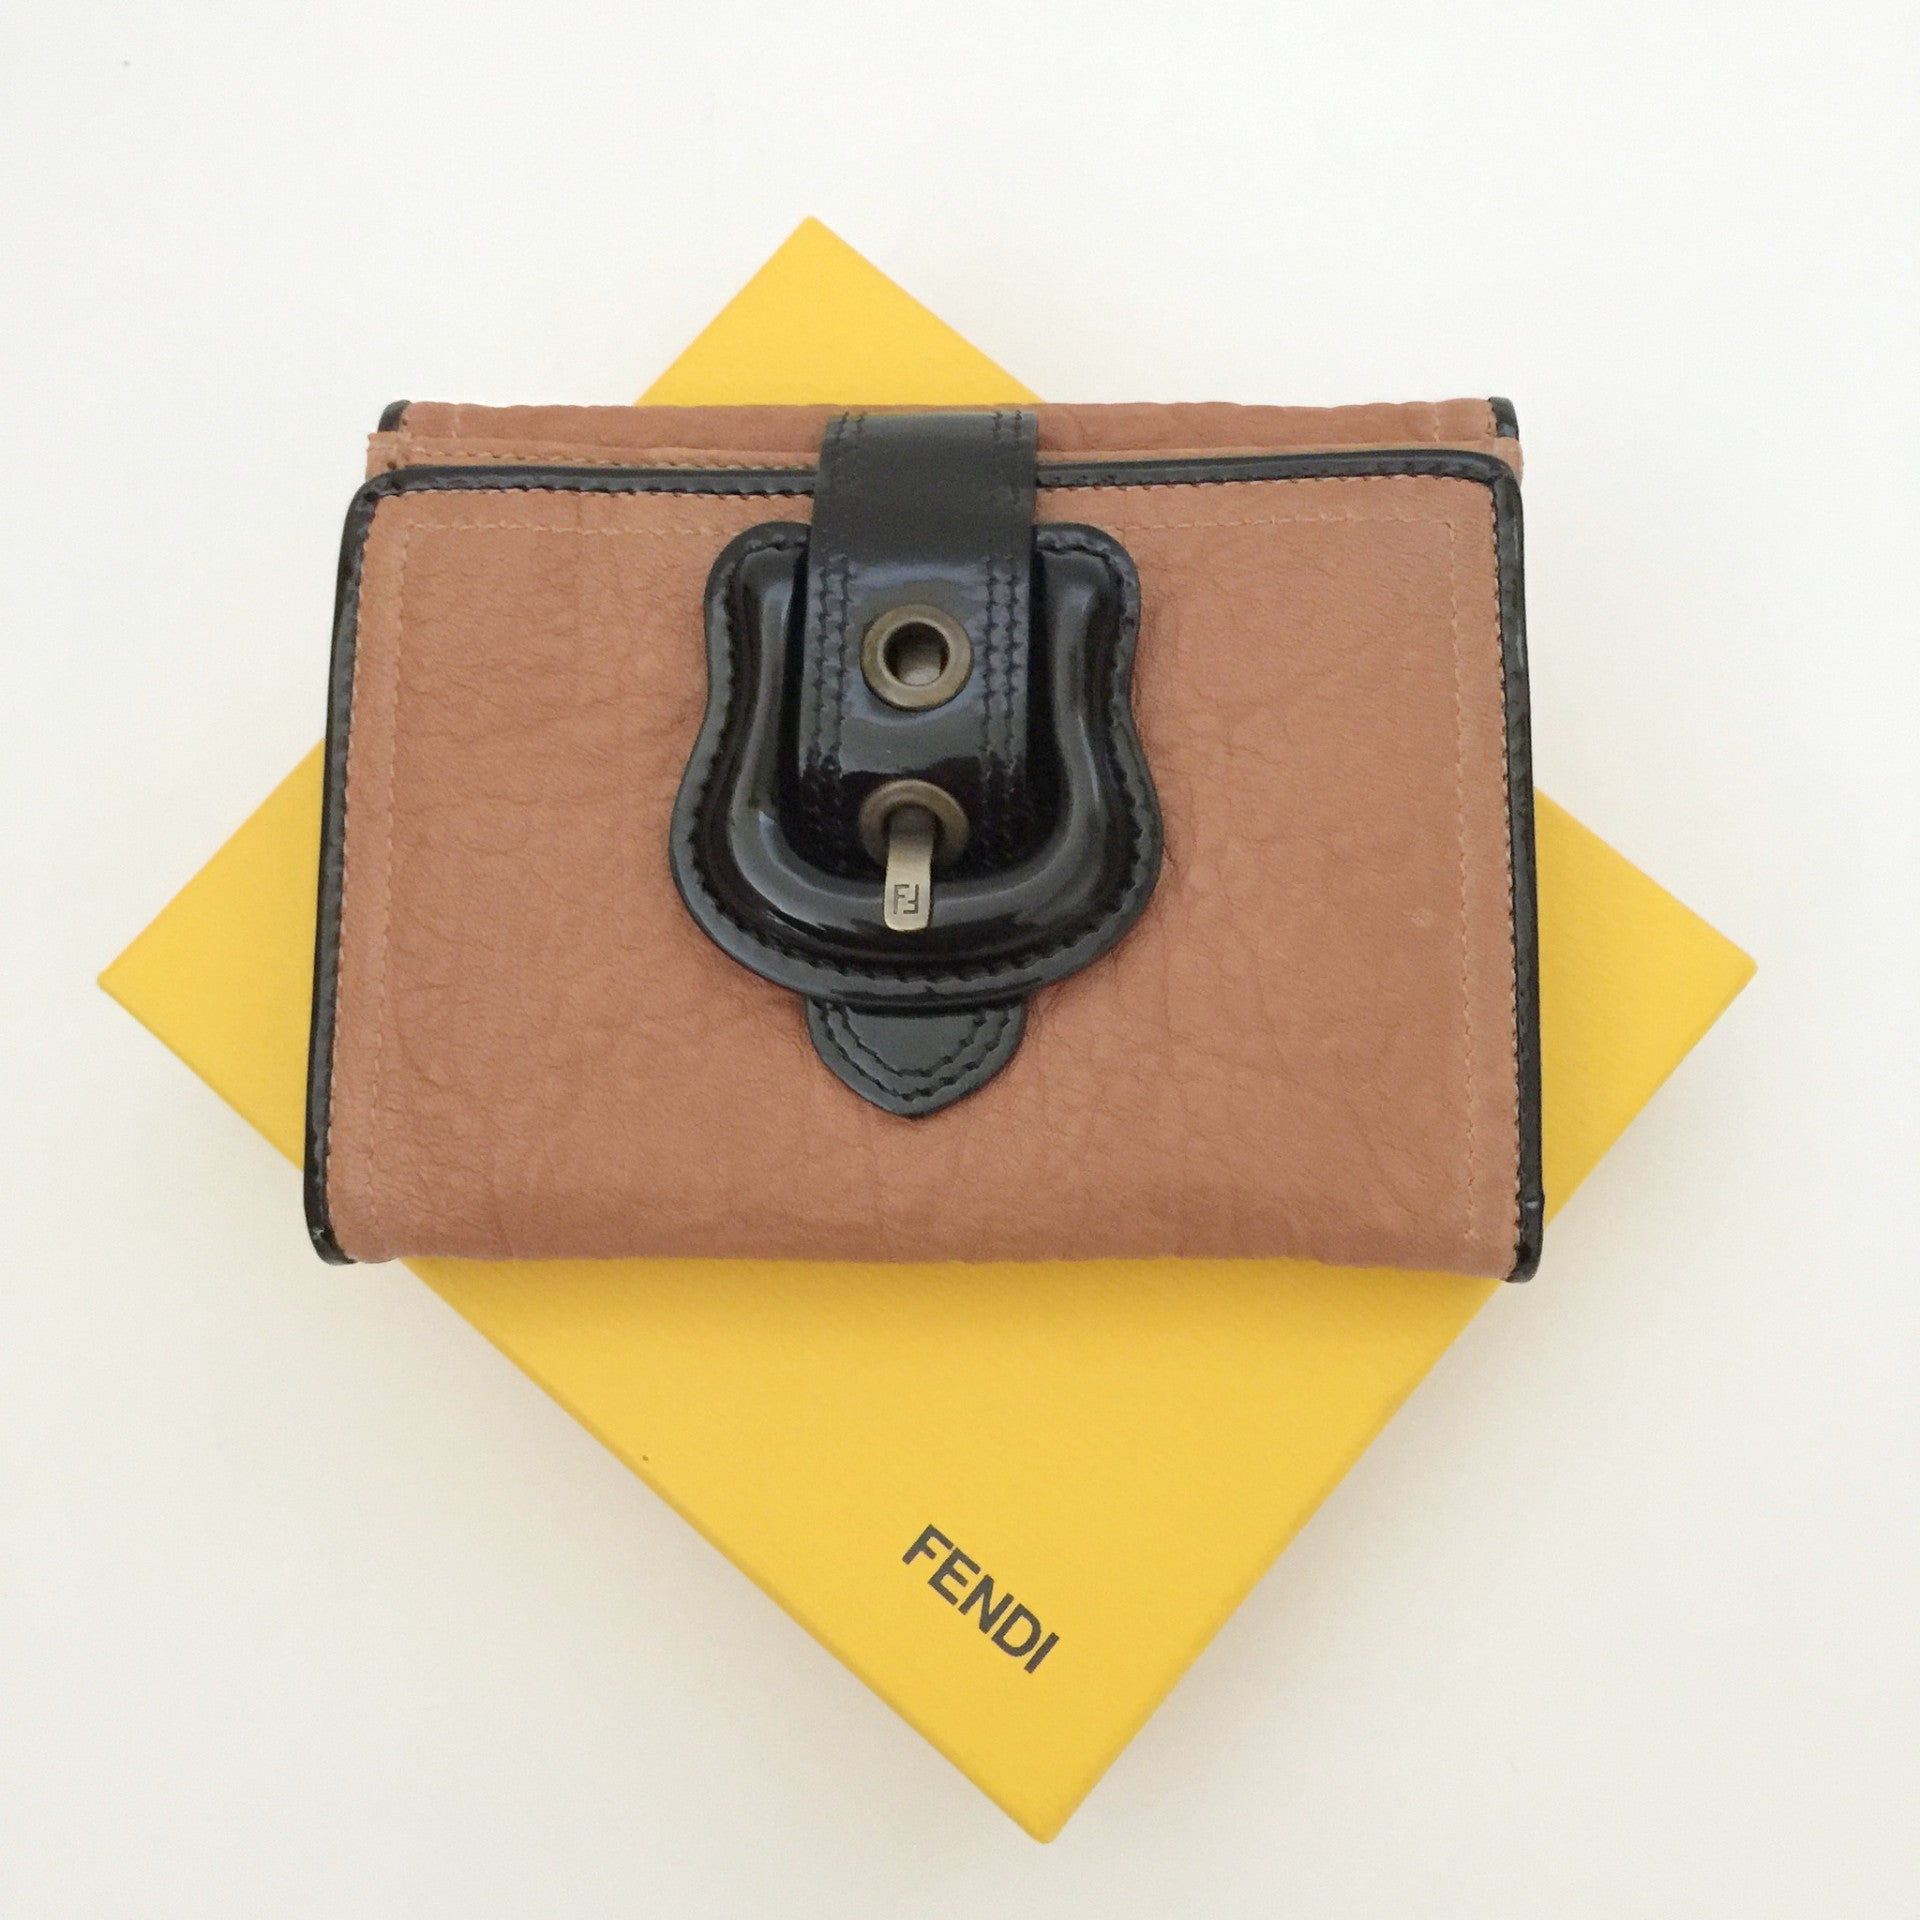 Authentic FENDI B Wallet